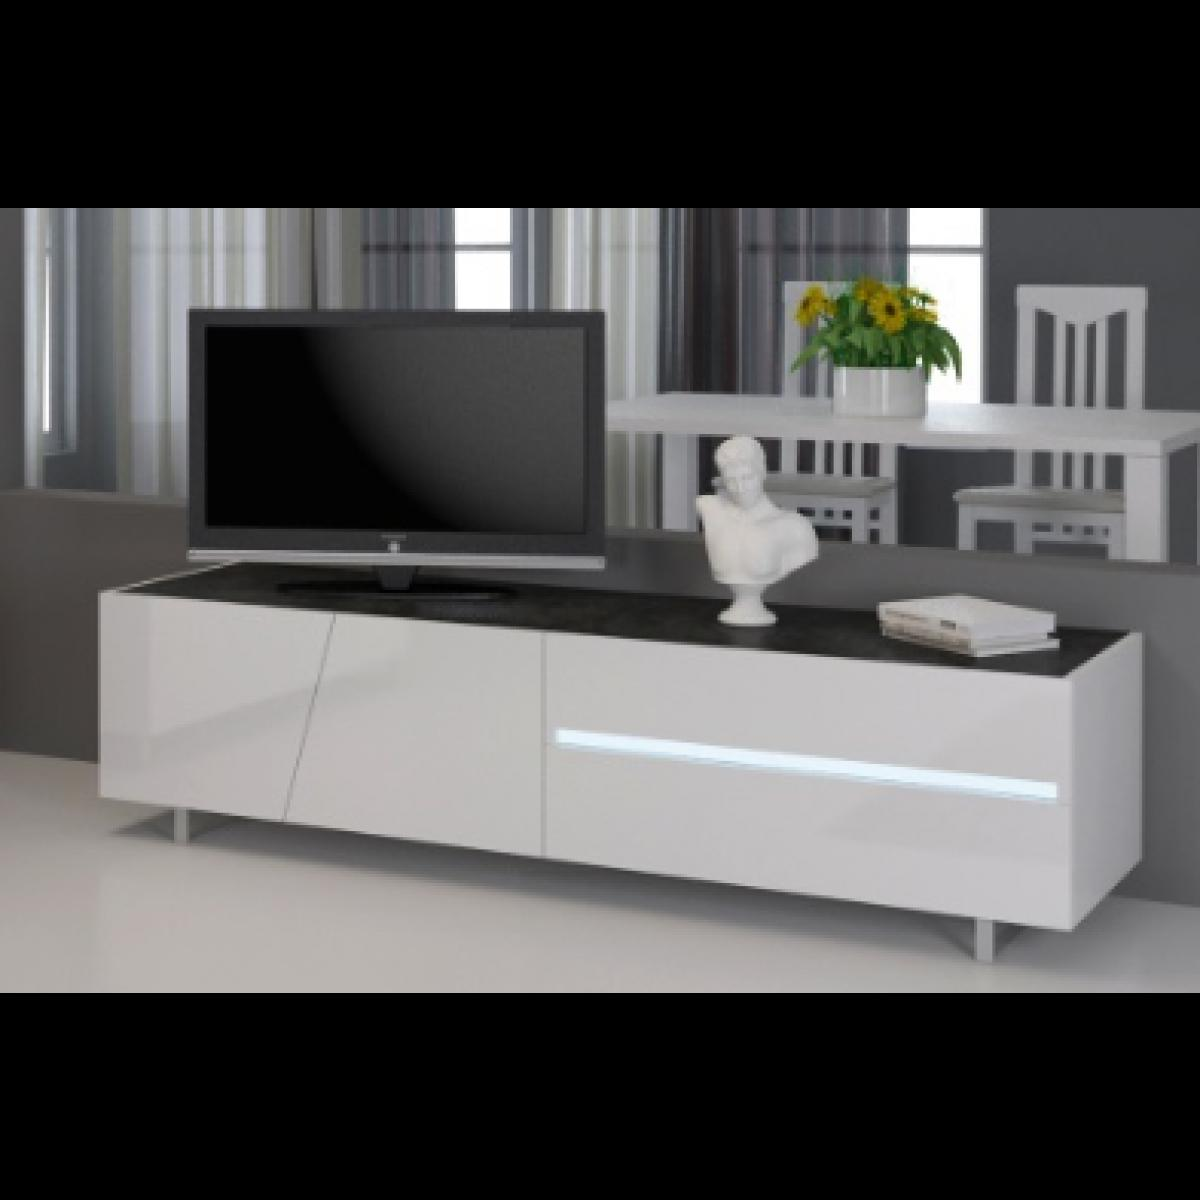 Meuble Tv Blanc Laqu 160 Cm Firstcdiscount # Meuble Tv Brillant